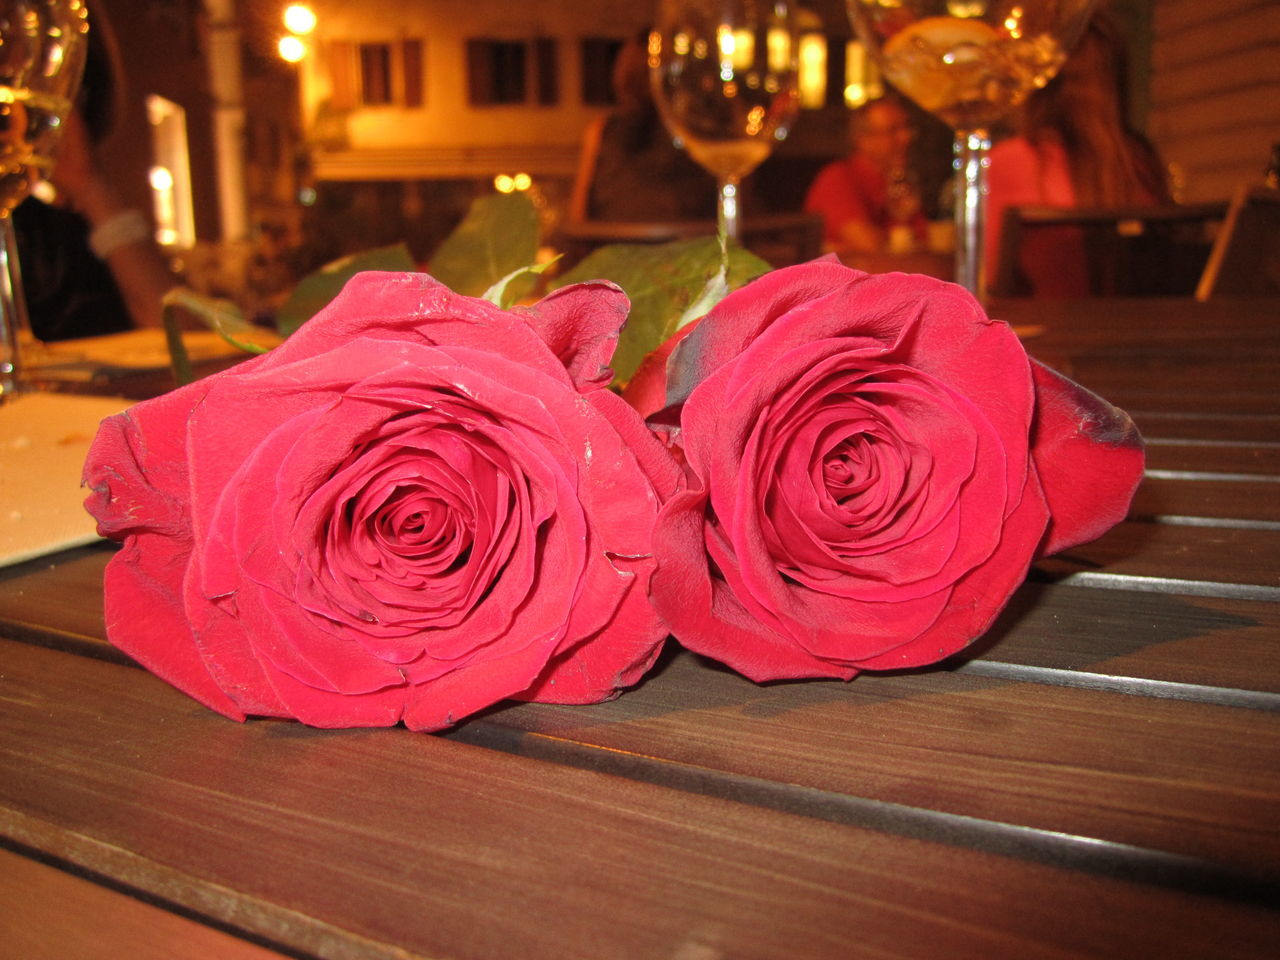 Aperitivo Time Close-up Flower Flowers_collection Red Roses Rose - Flower Roses The 00 Mission Wine Tasting Wood - Material Rosas Rojas